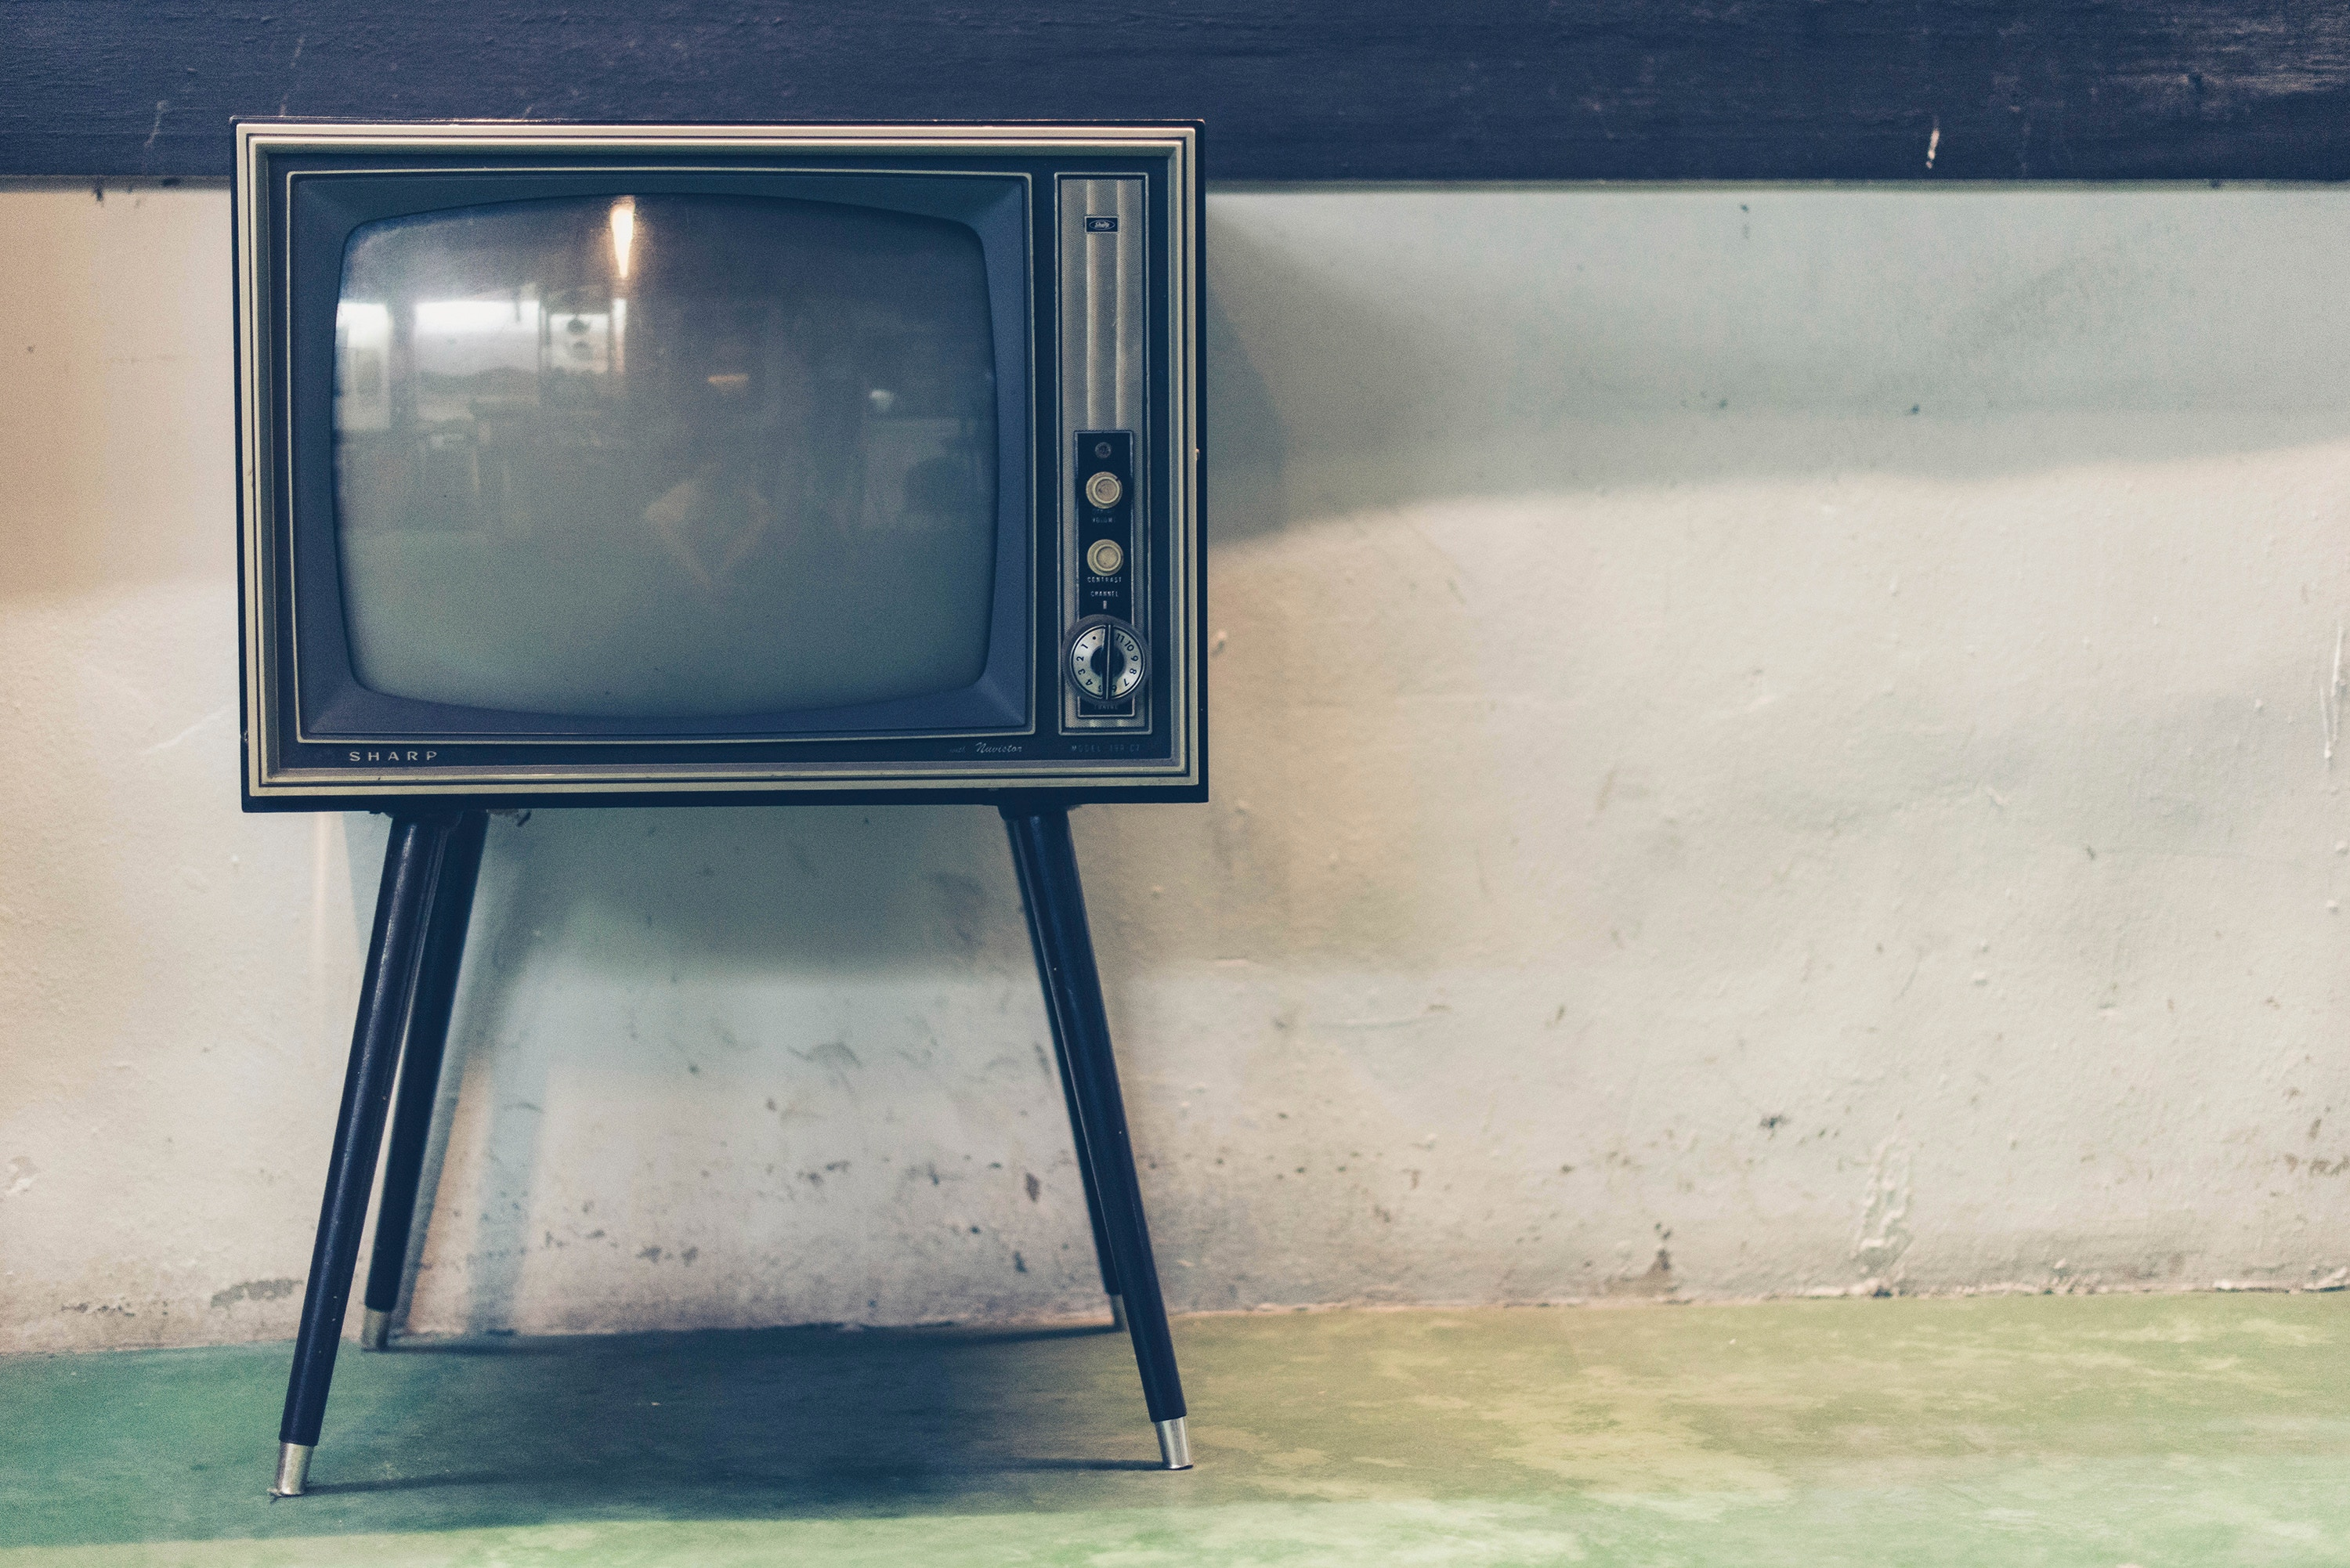 Television viewings are in decline